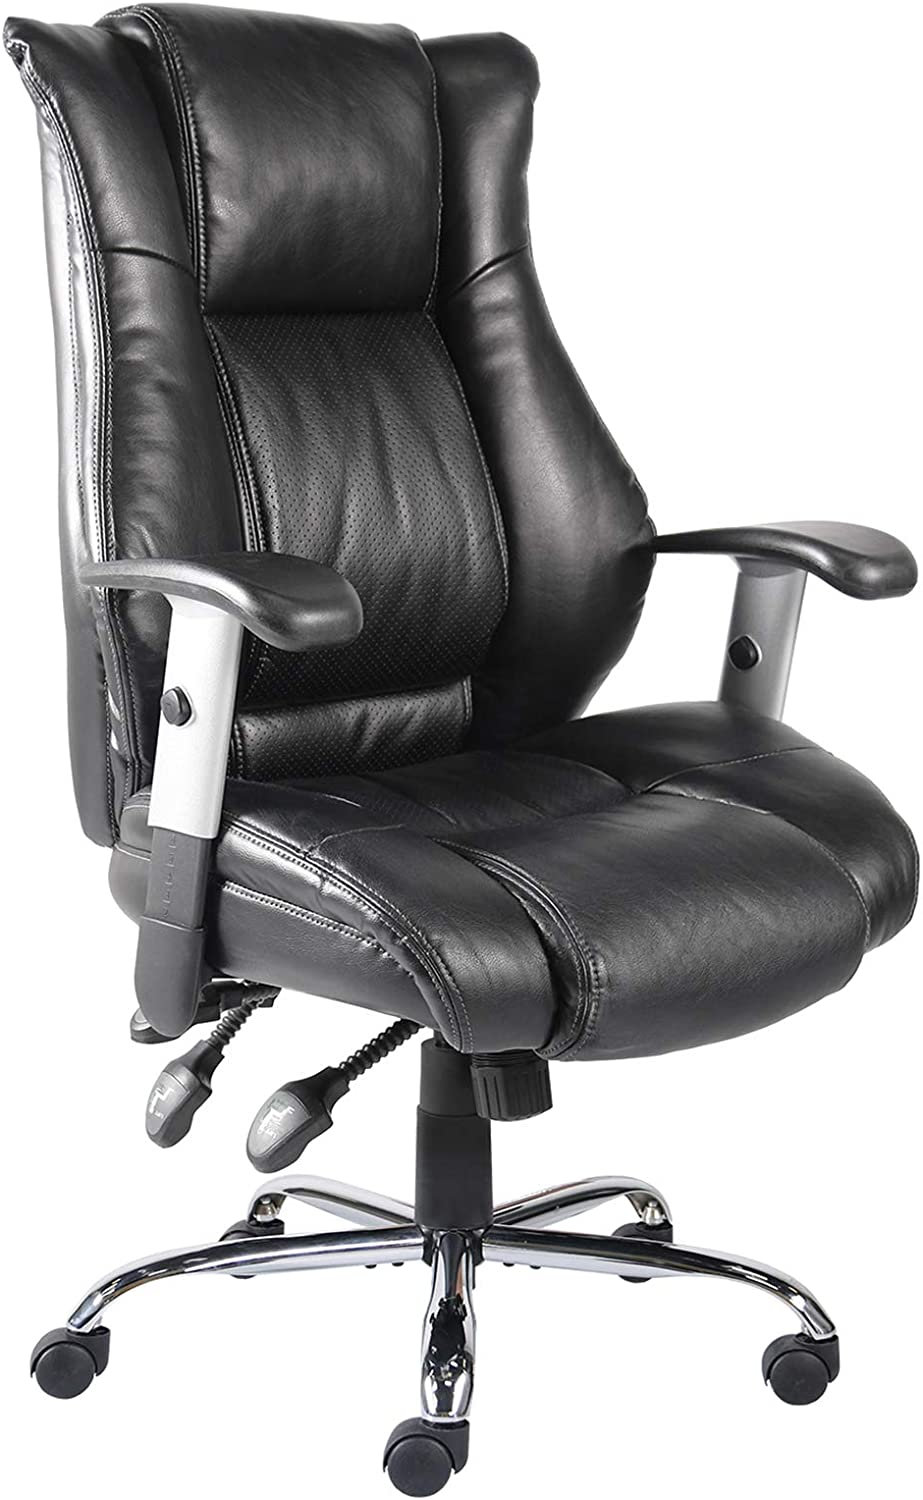 71GrfNZClBL. AC SL1500 - What is The Best Computer Chair For Long Hours Sitting? [Comfortable and Ergonomic] - ChairPicks